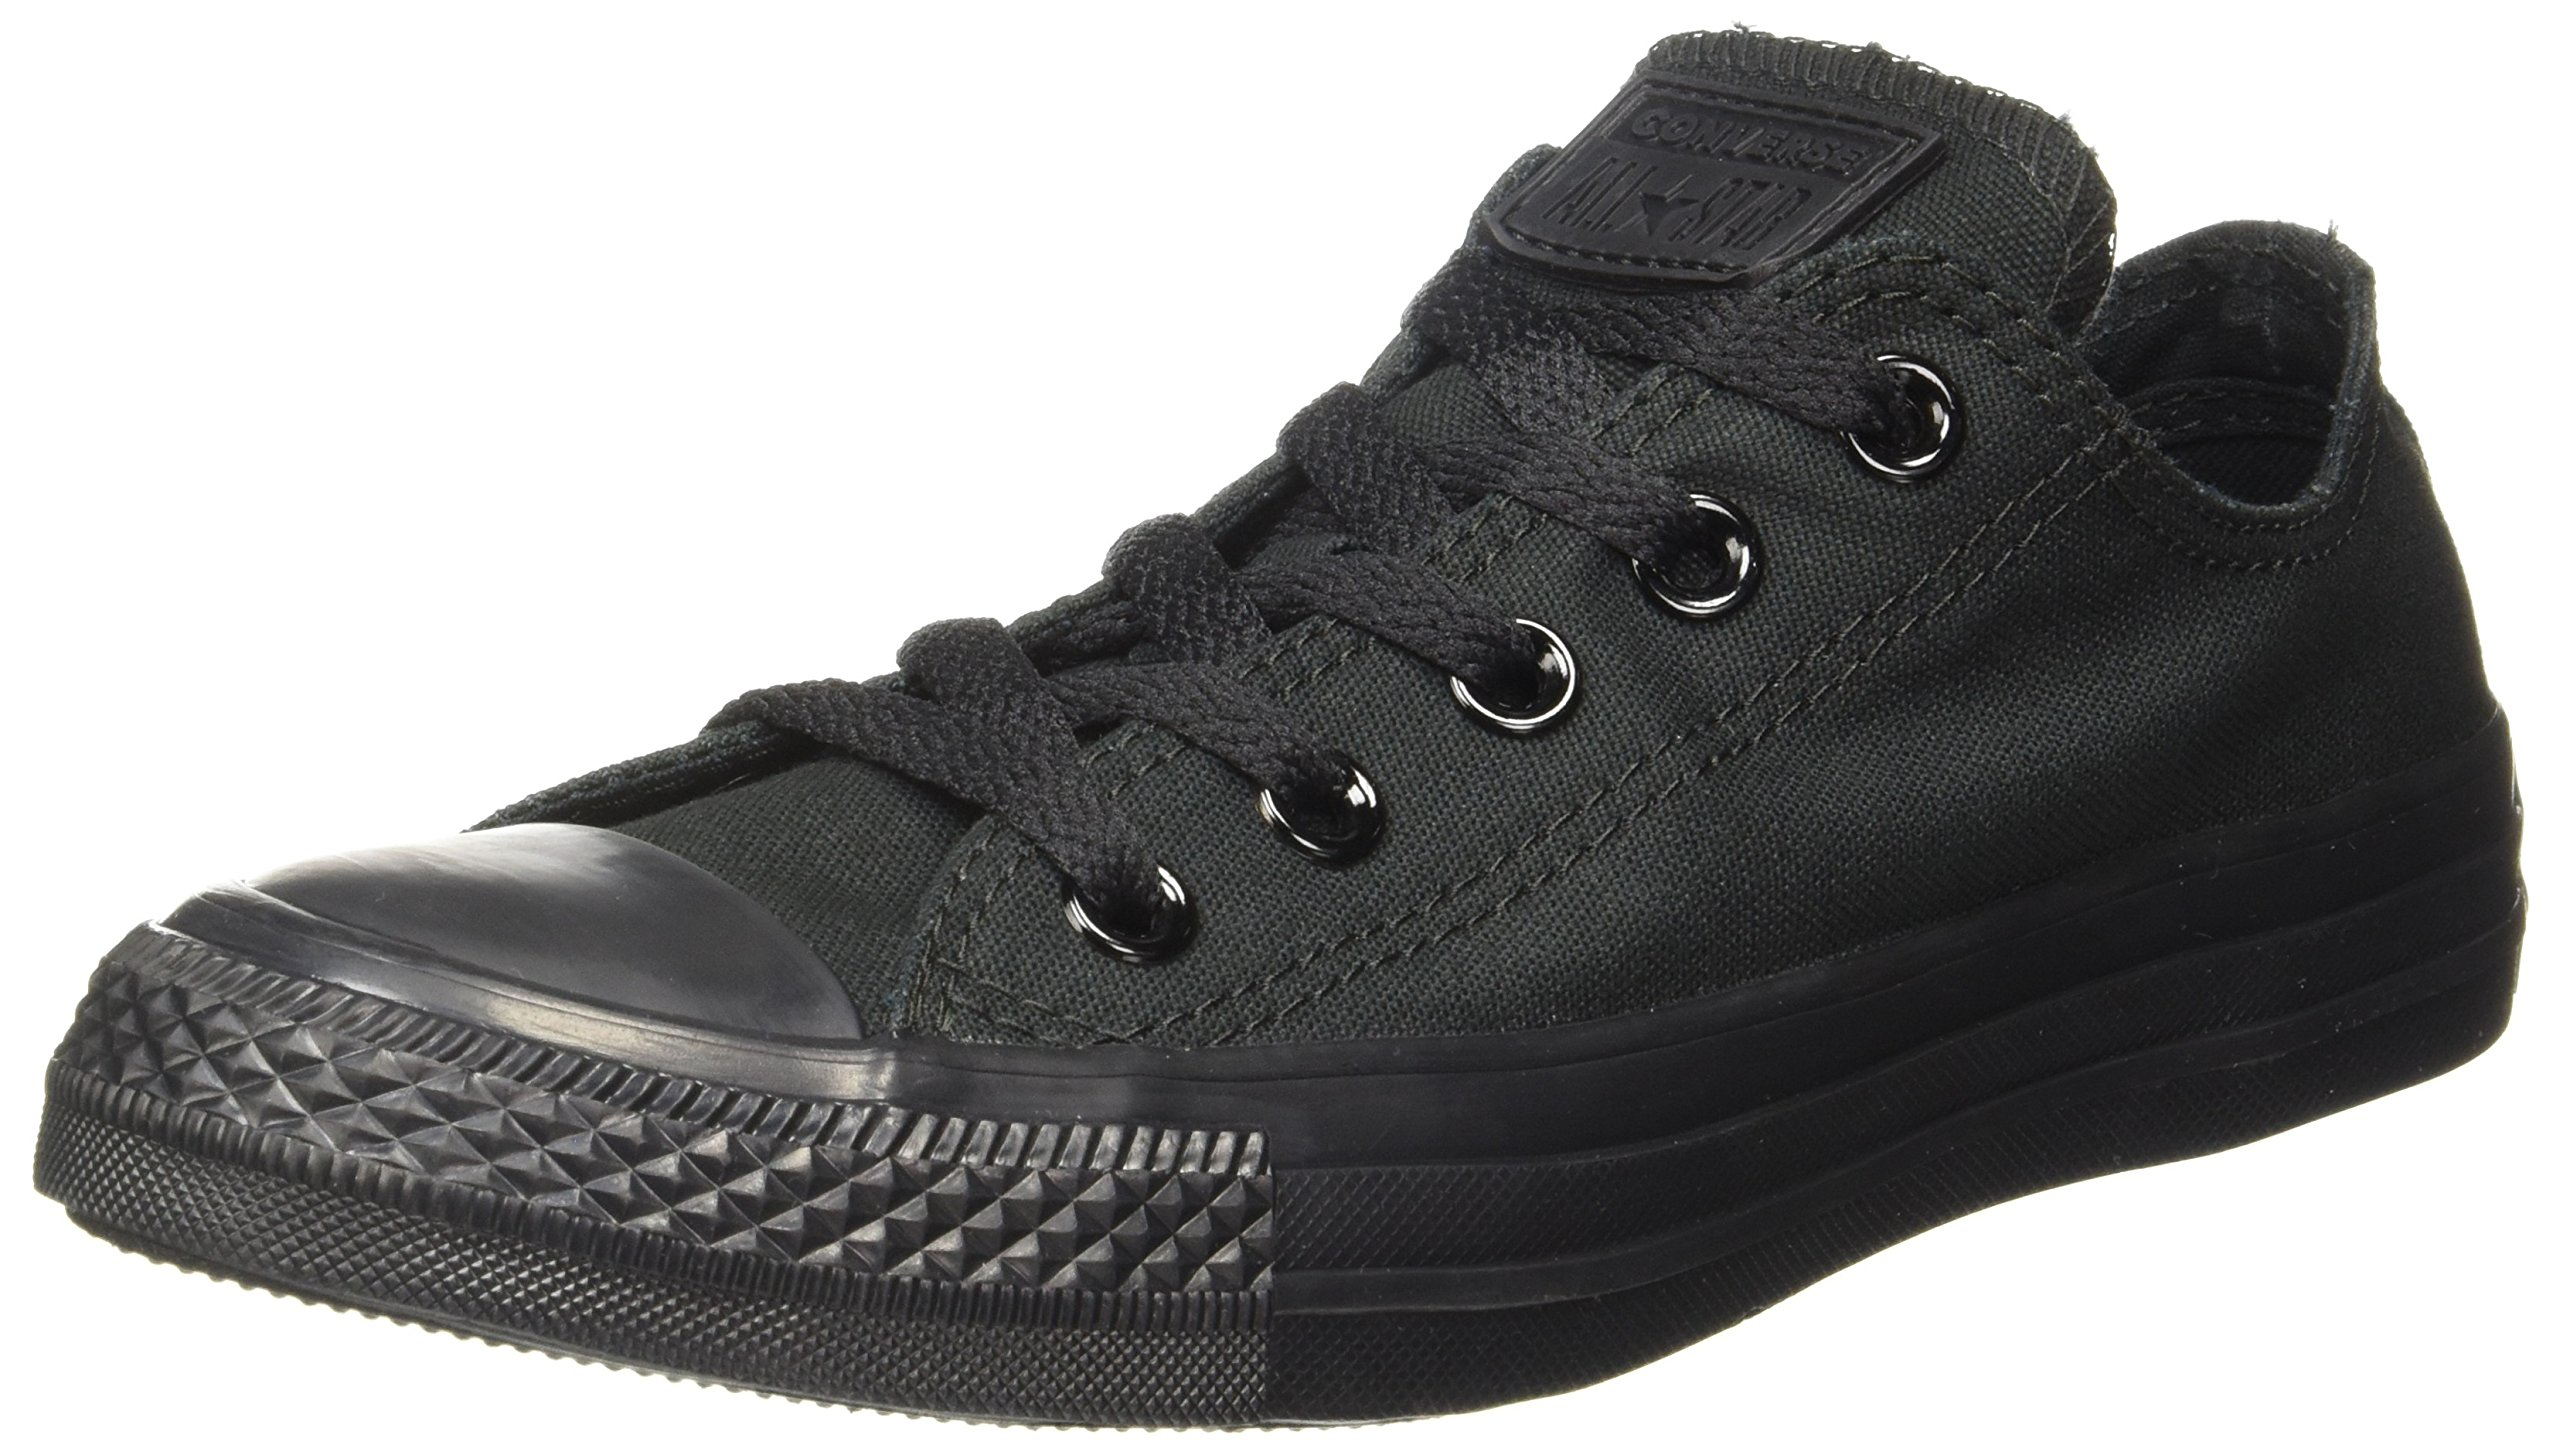 Converse Unisex Mono Black Sneakers - 6 UK / 7 US (150764C) (B012TRUPME) Amazon Price History, Amazon Price Tracker